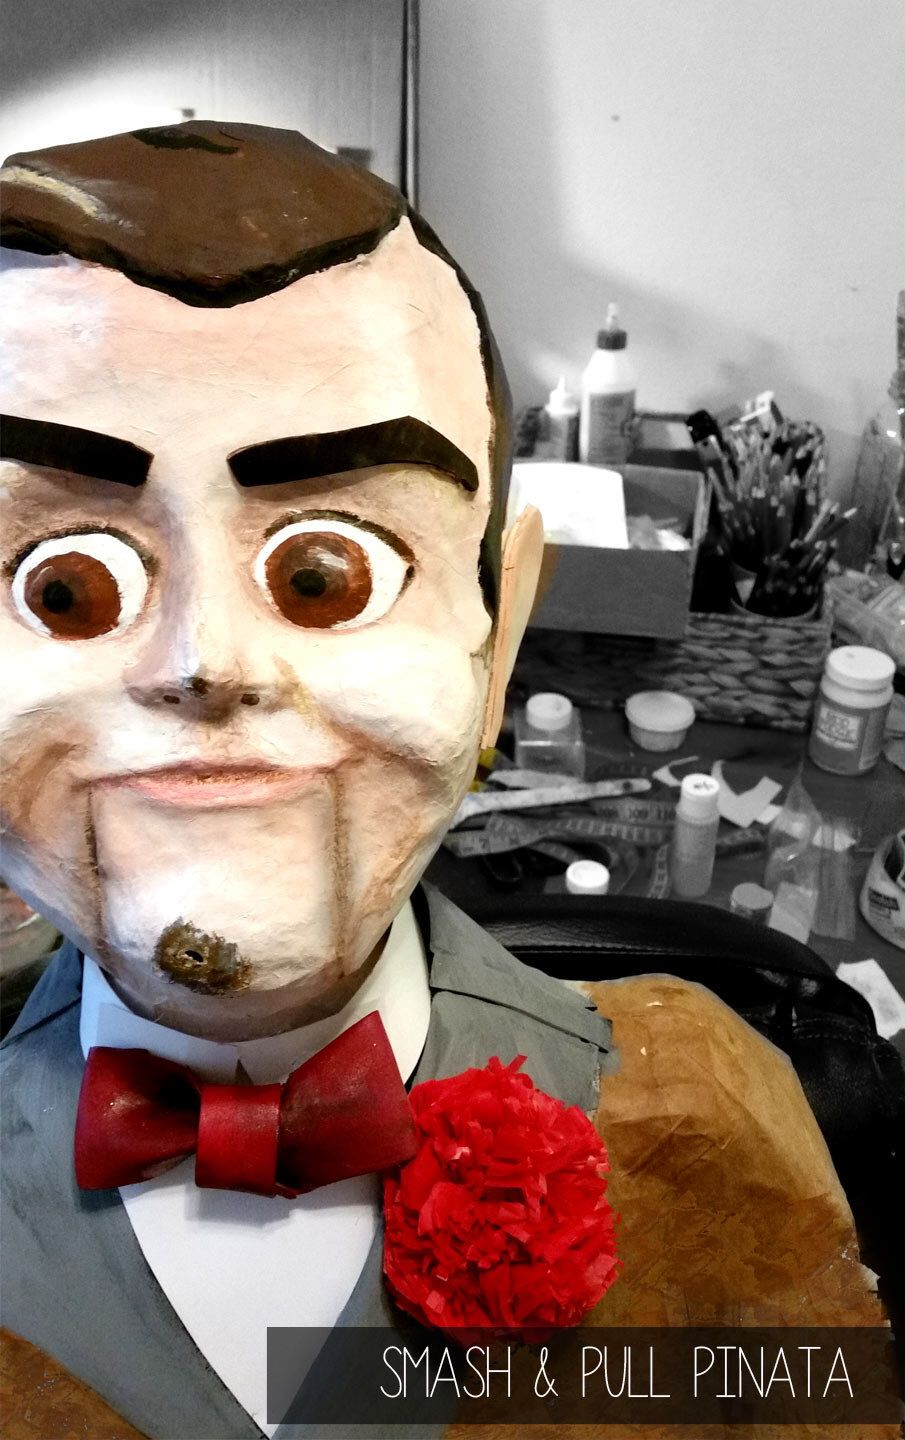 Birthday pinata ventriloquist dummy party guy 3d prop paper mache birthday pinata ventriloquist dummy party guy 3d prop paper mache doll creepy party decor haunted house ccuart Choice Image